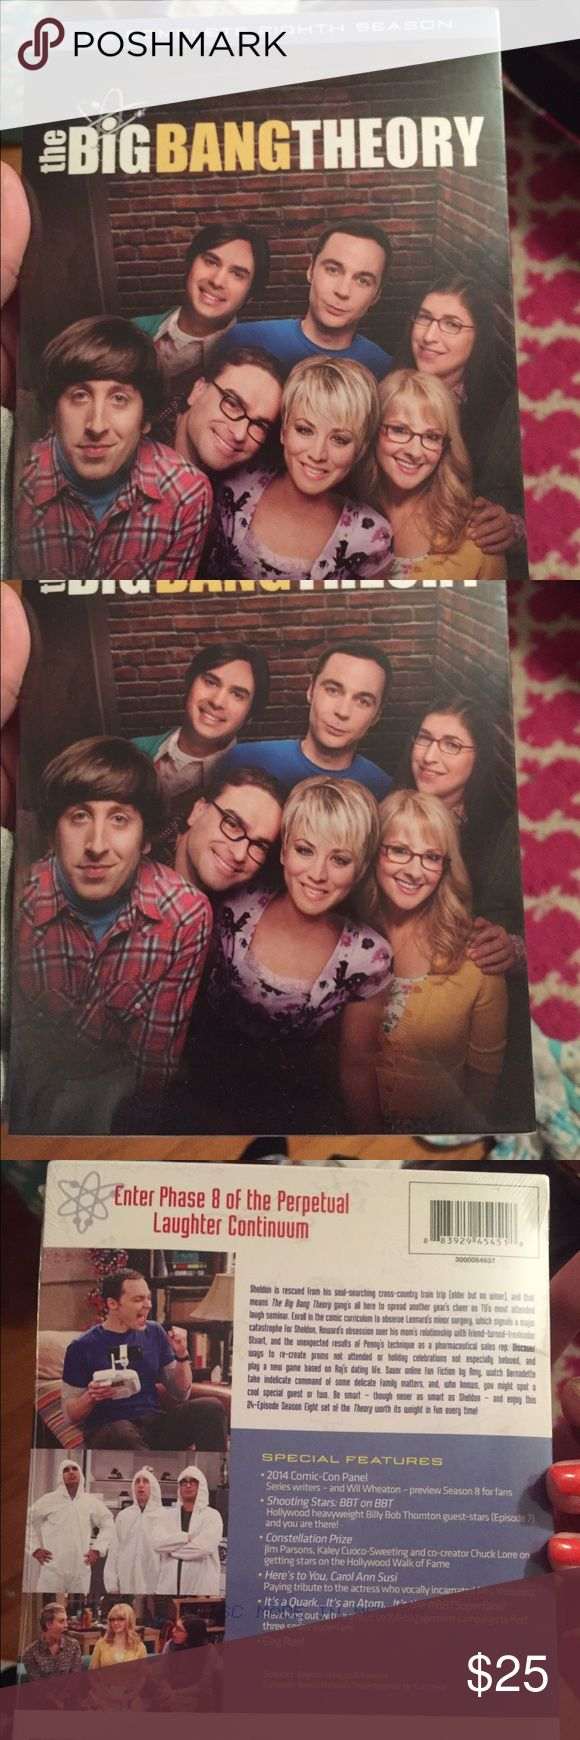 Big Bang Theory Season 8 DVD Set NWT NWT Big Bang Theory complete season 8 DVD set. Still in the package. Other